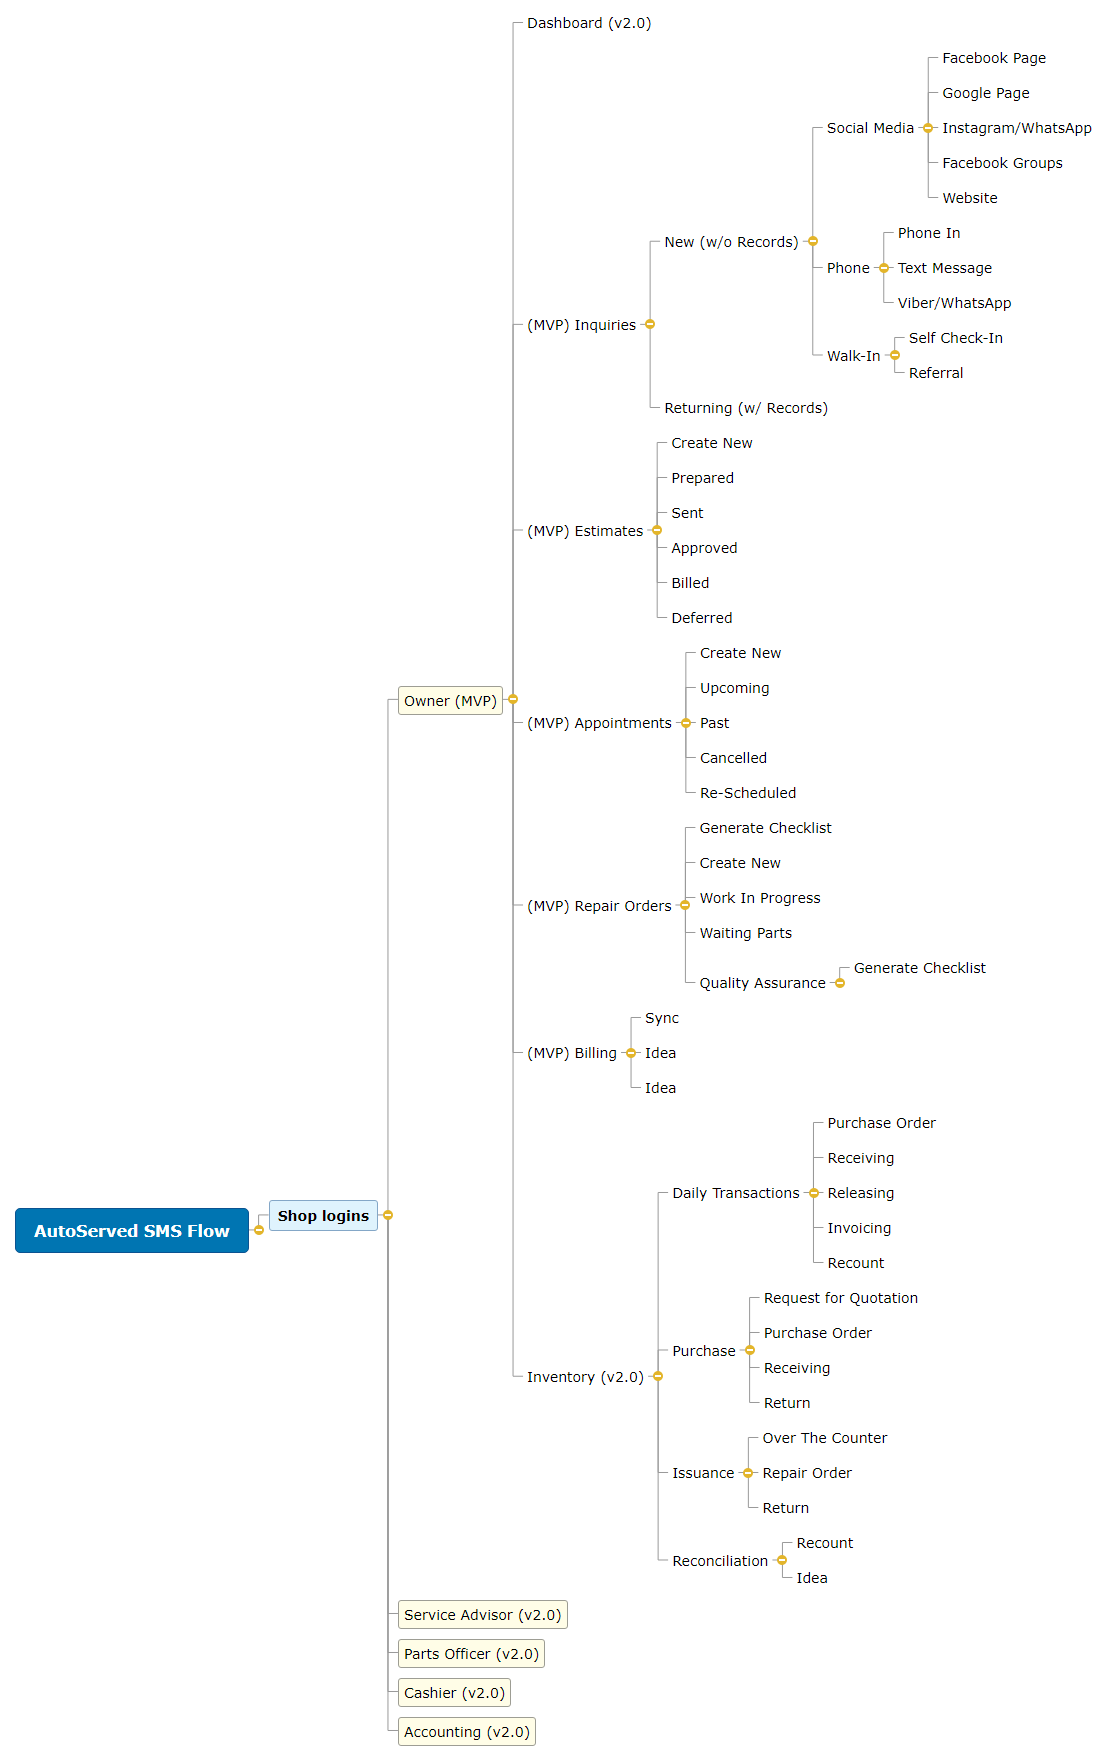 AutoServed SMS Flow1 Mind Map